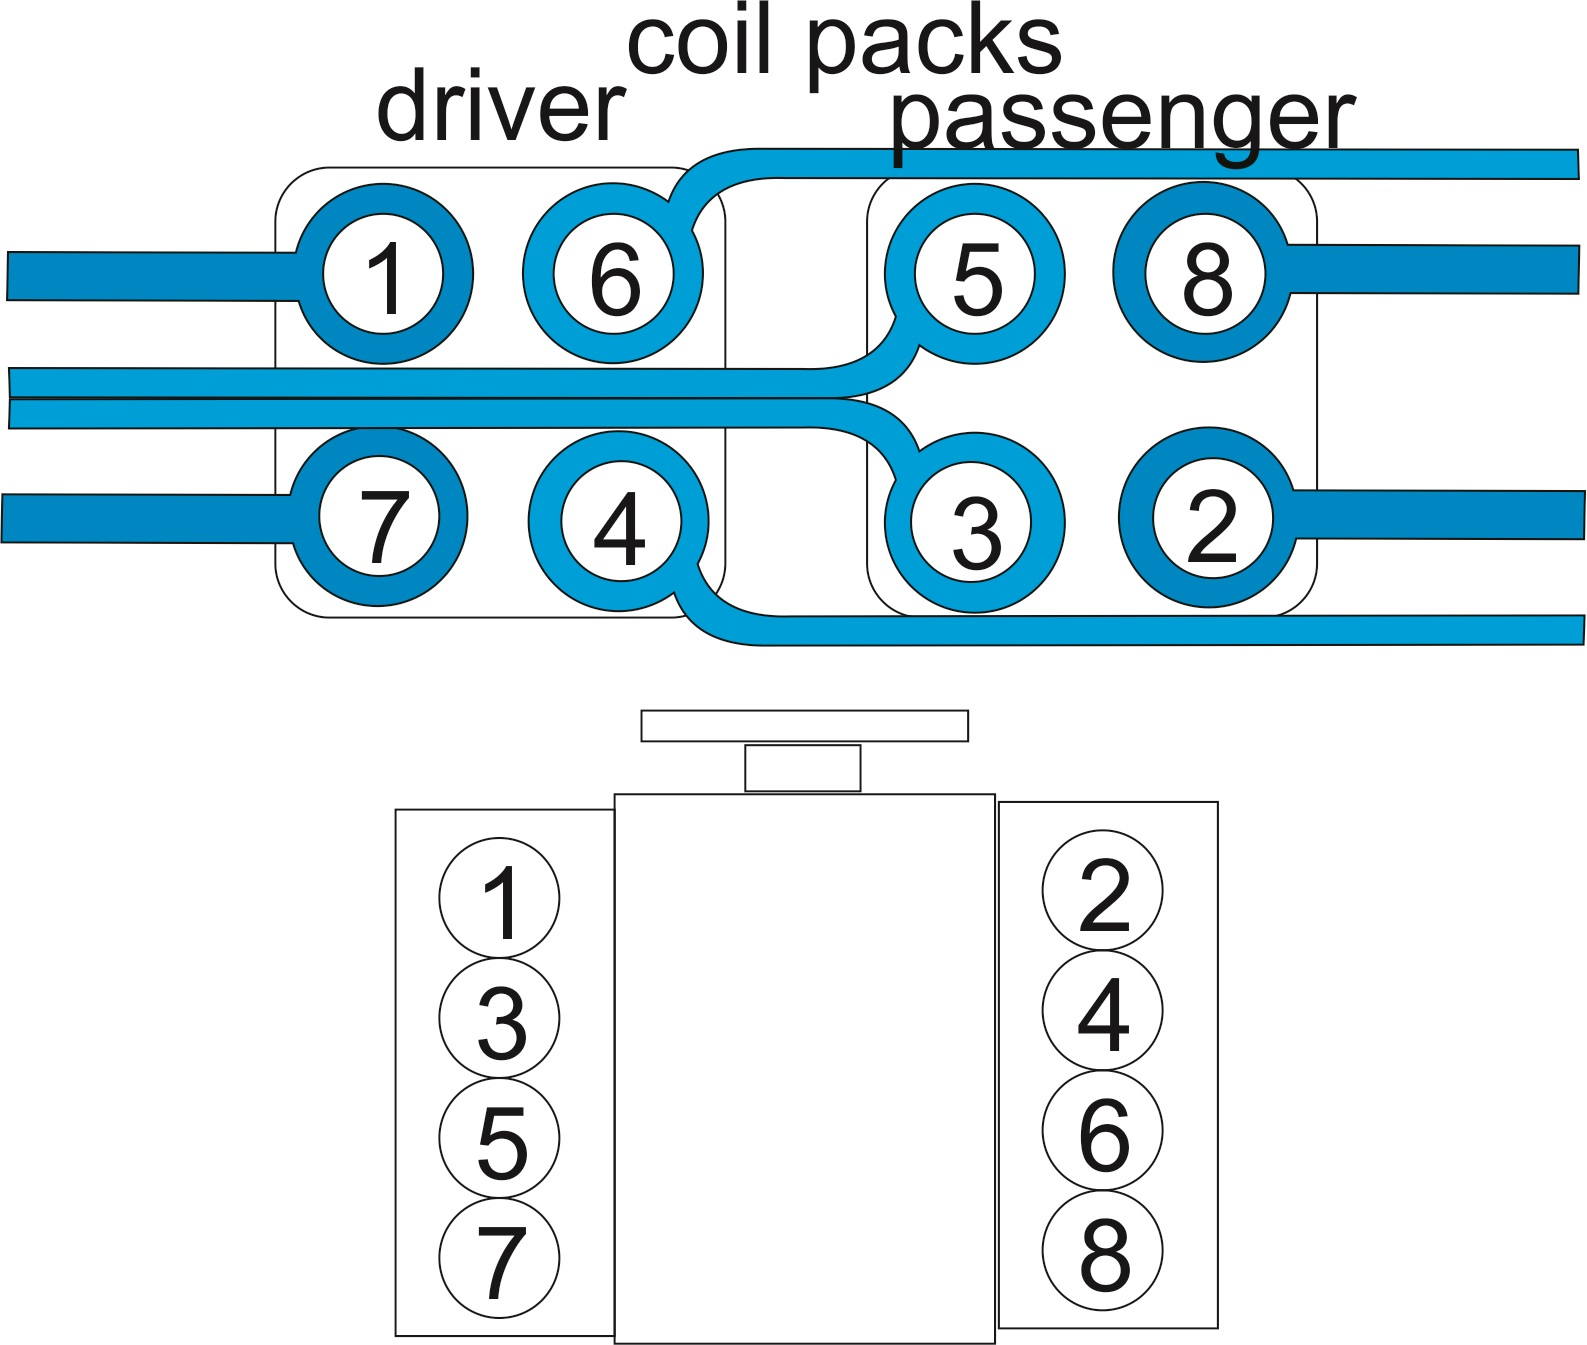 hight resolution of coil pack firing order diagram flashpack jpg